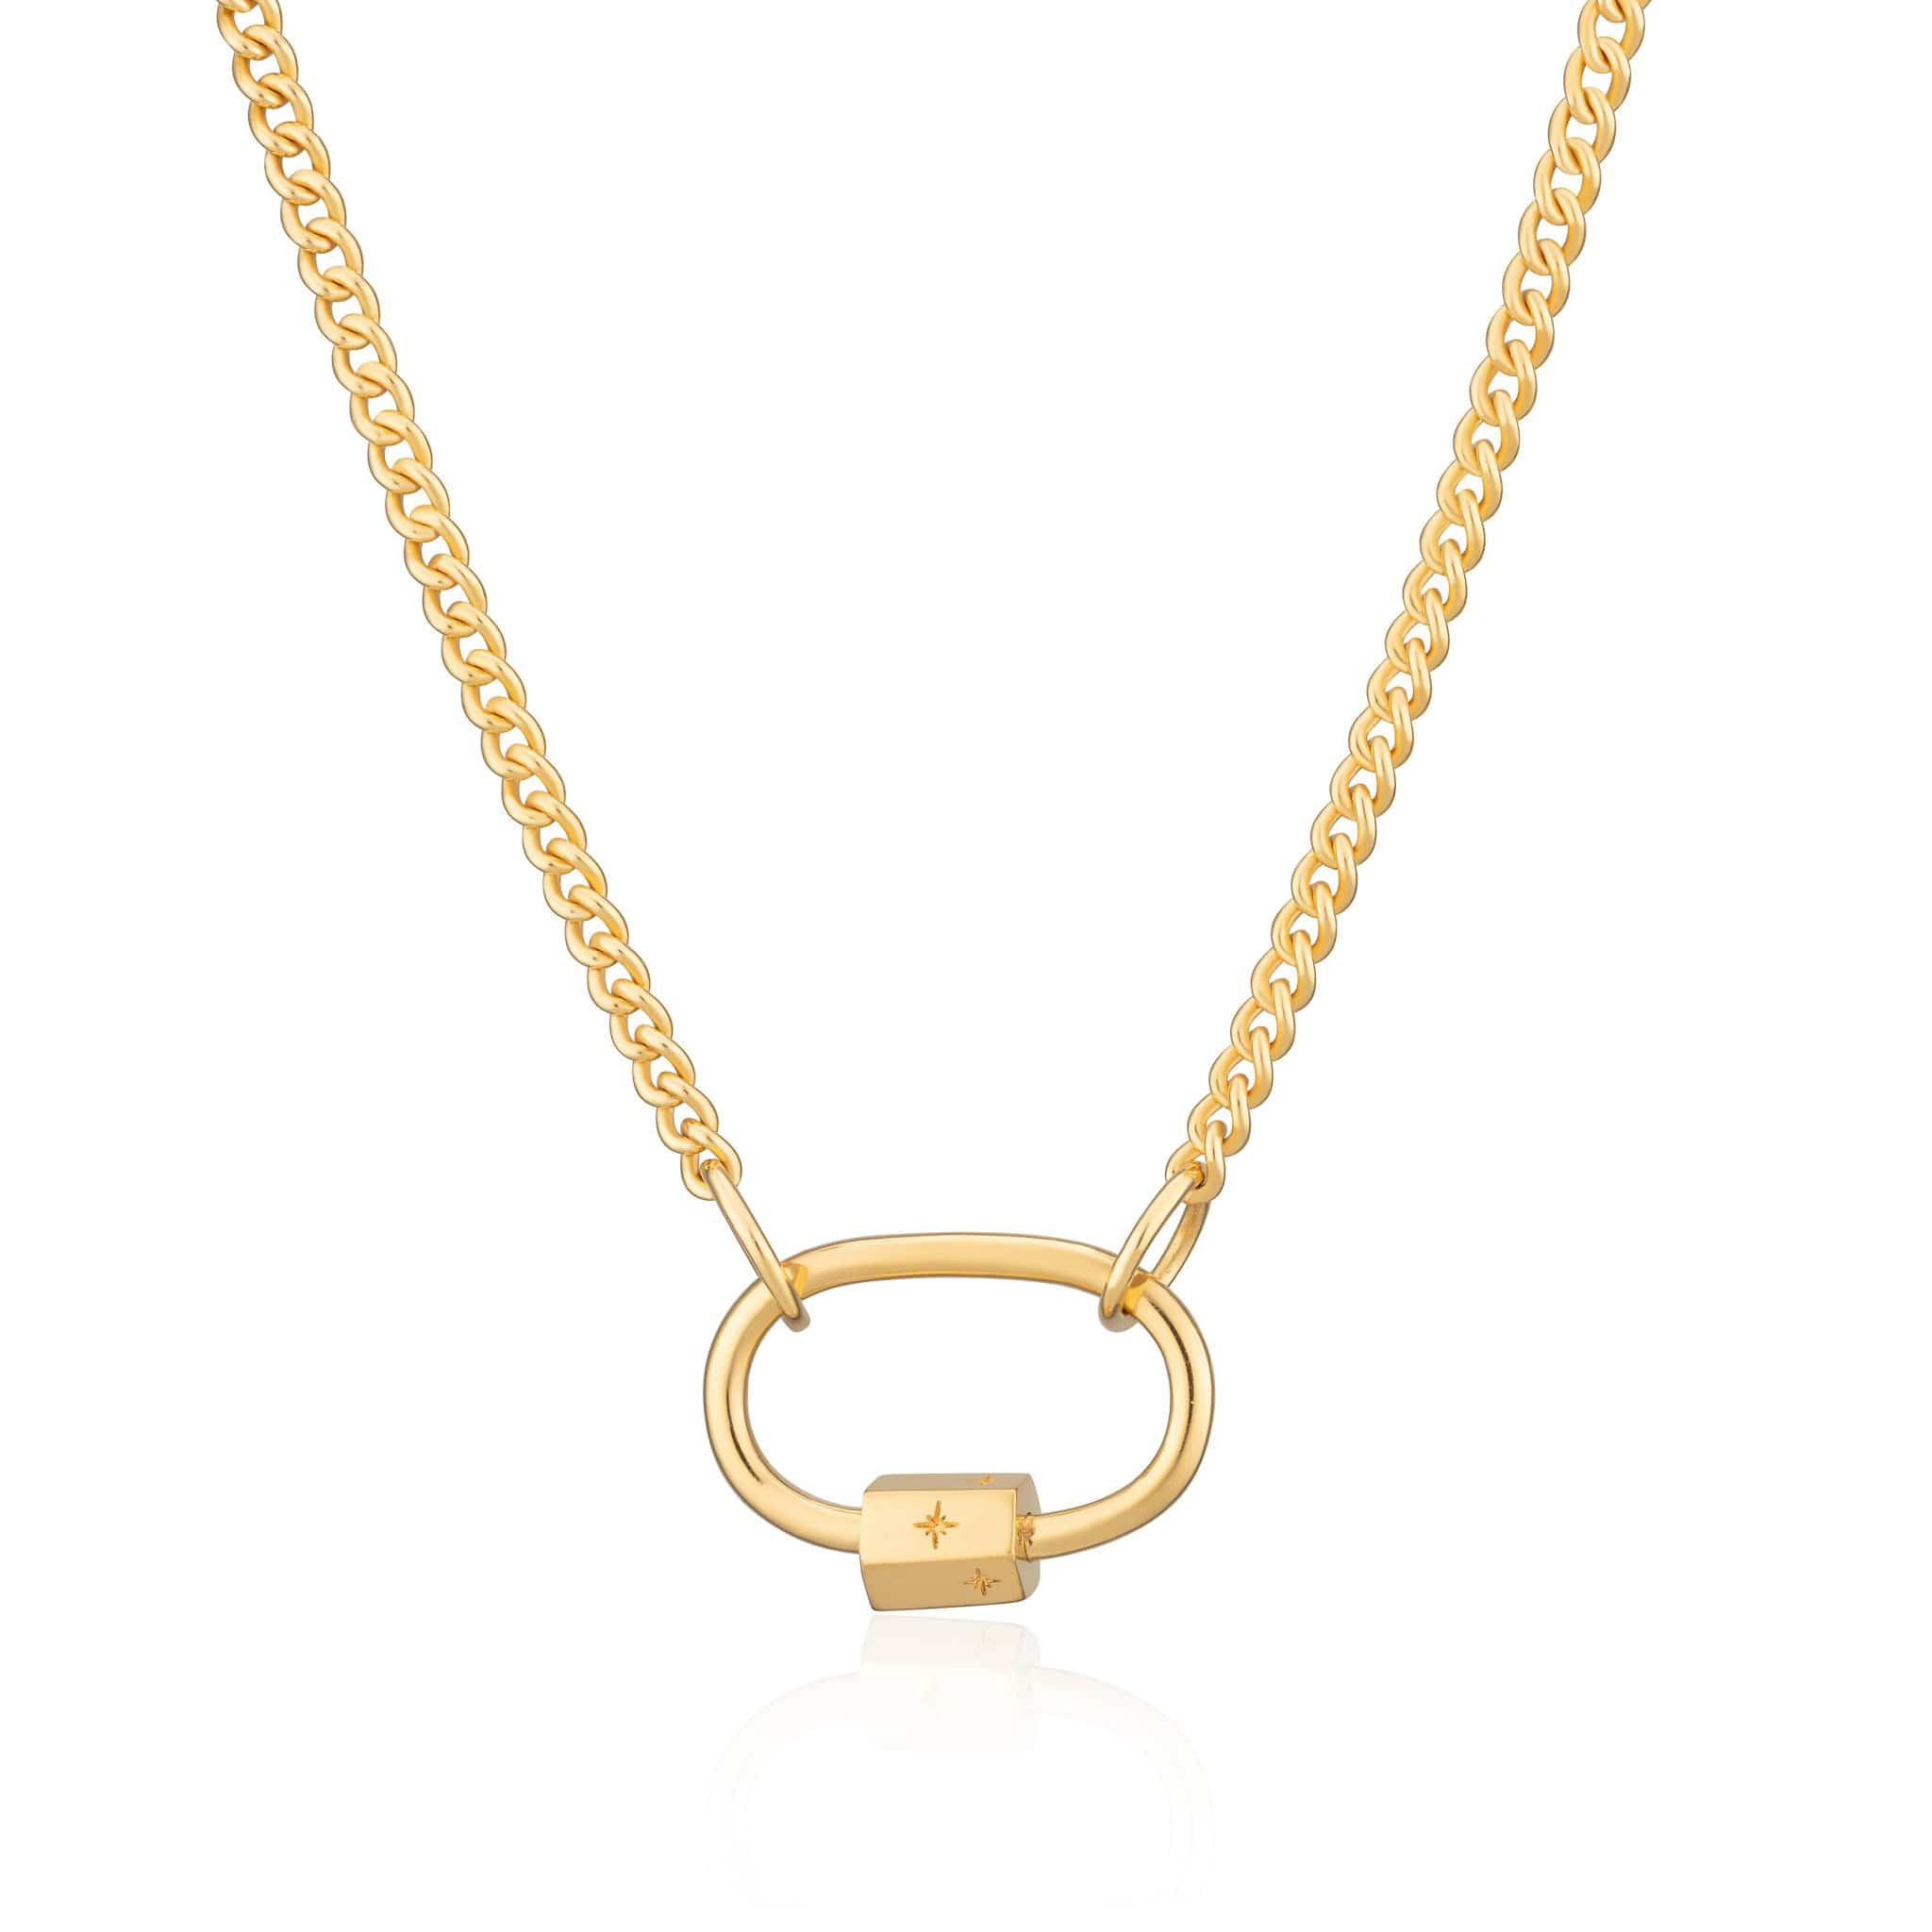 Gold Plated Oval Carabiner Curb Chain Necklace by Lily Charmed